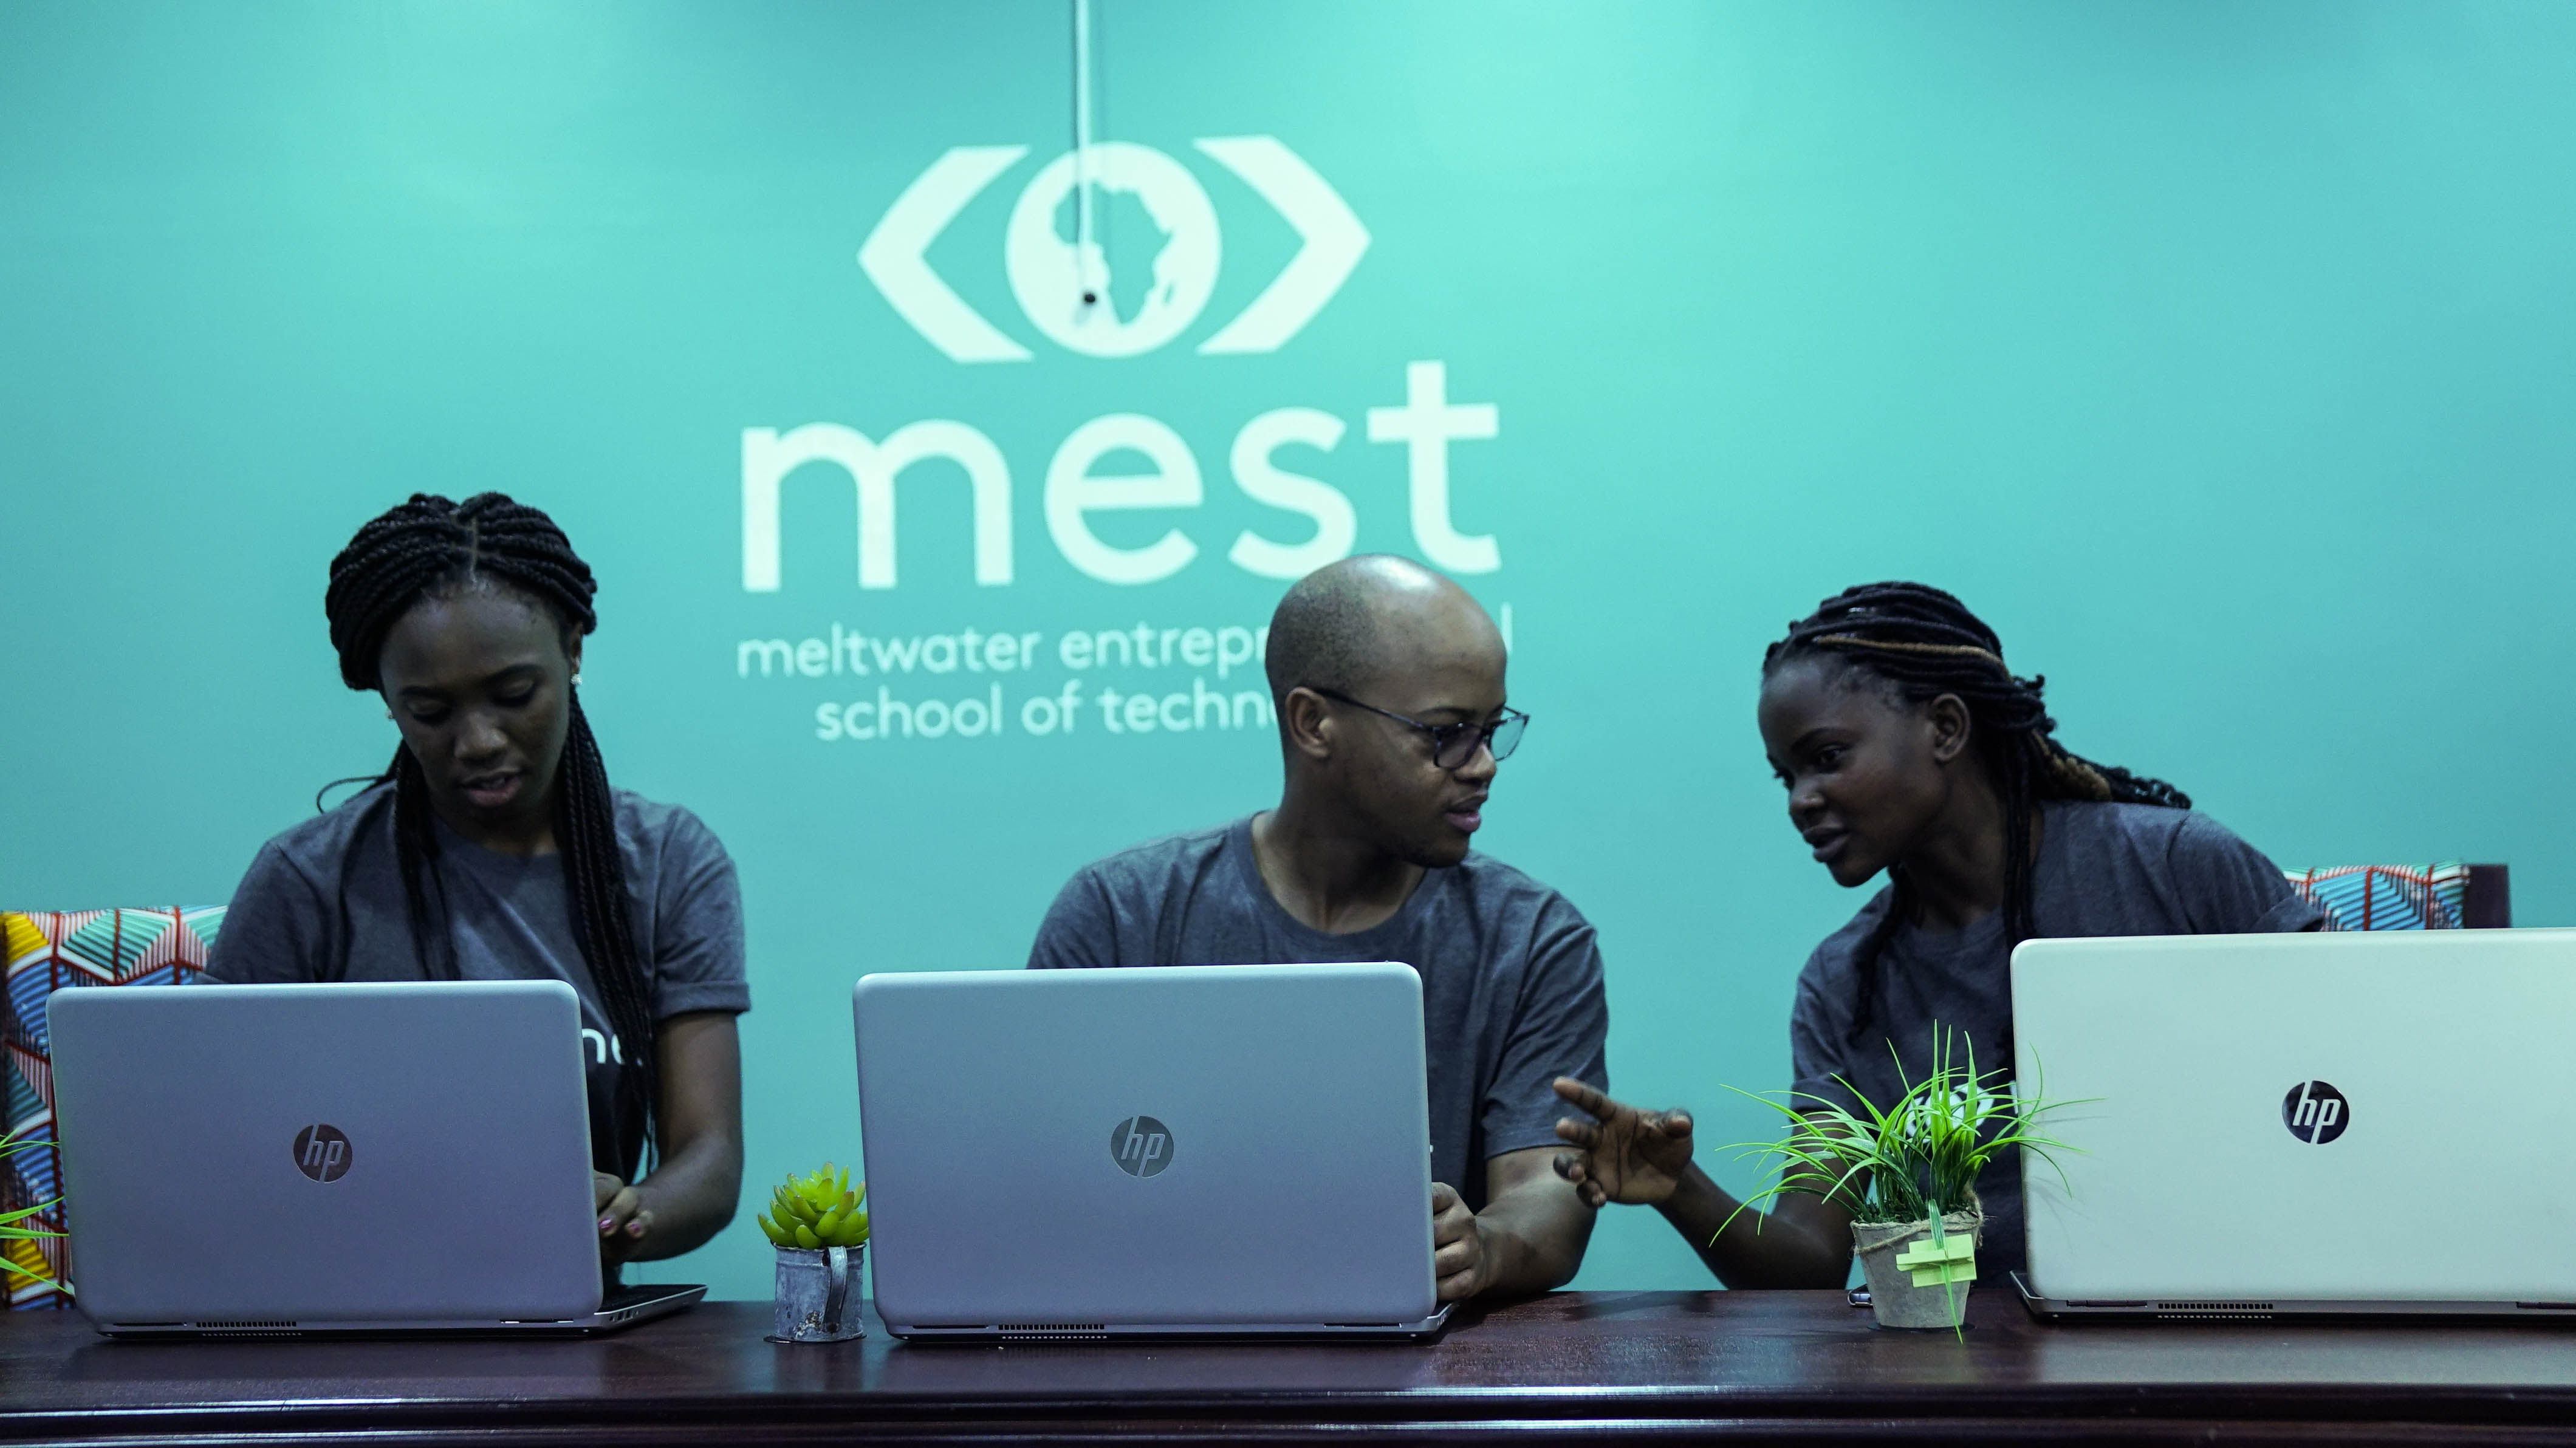 With new Managing Director, Ghana's MEST scales as Pan-African incubator